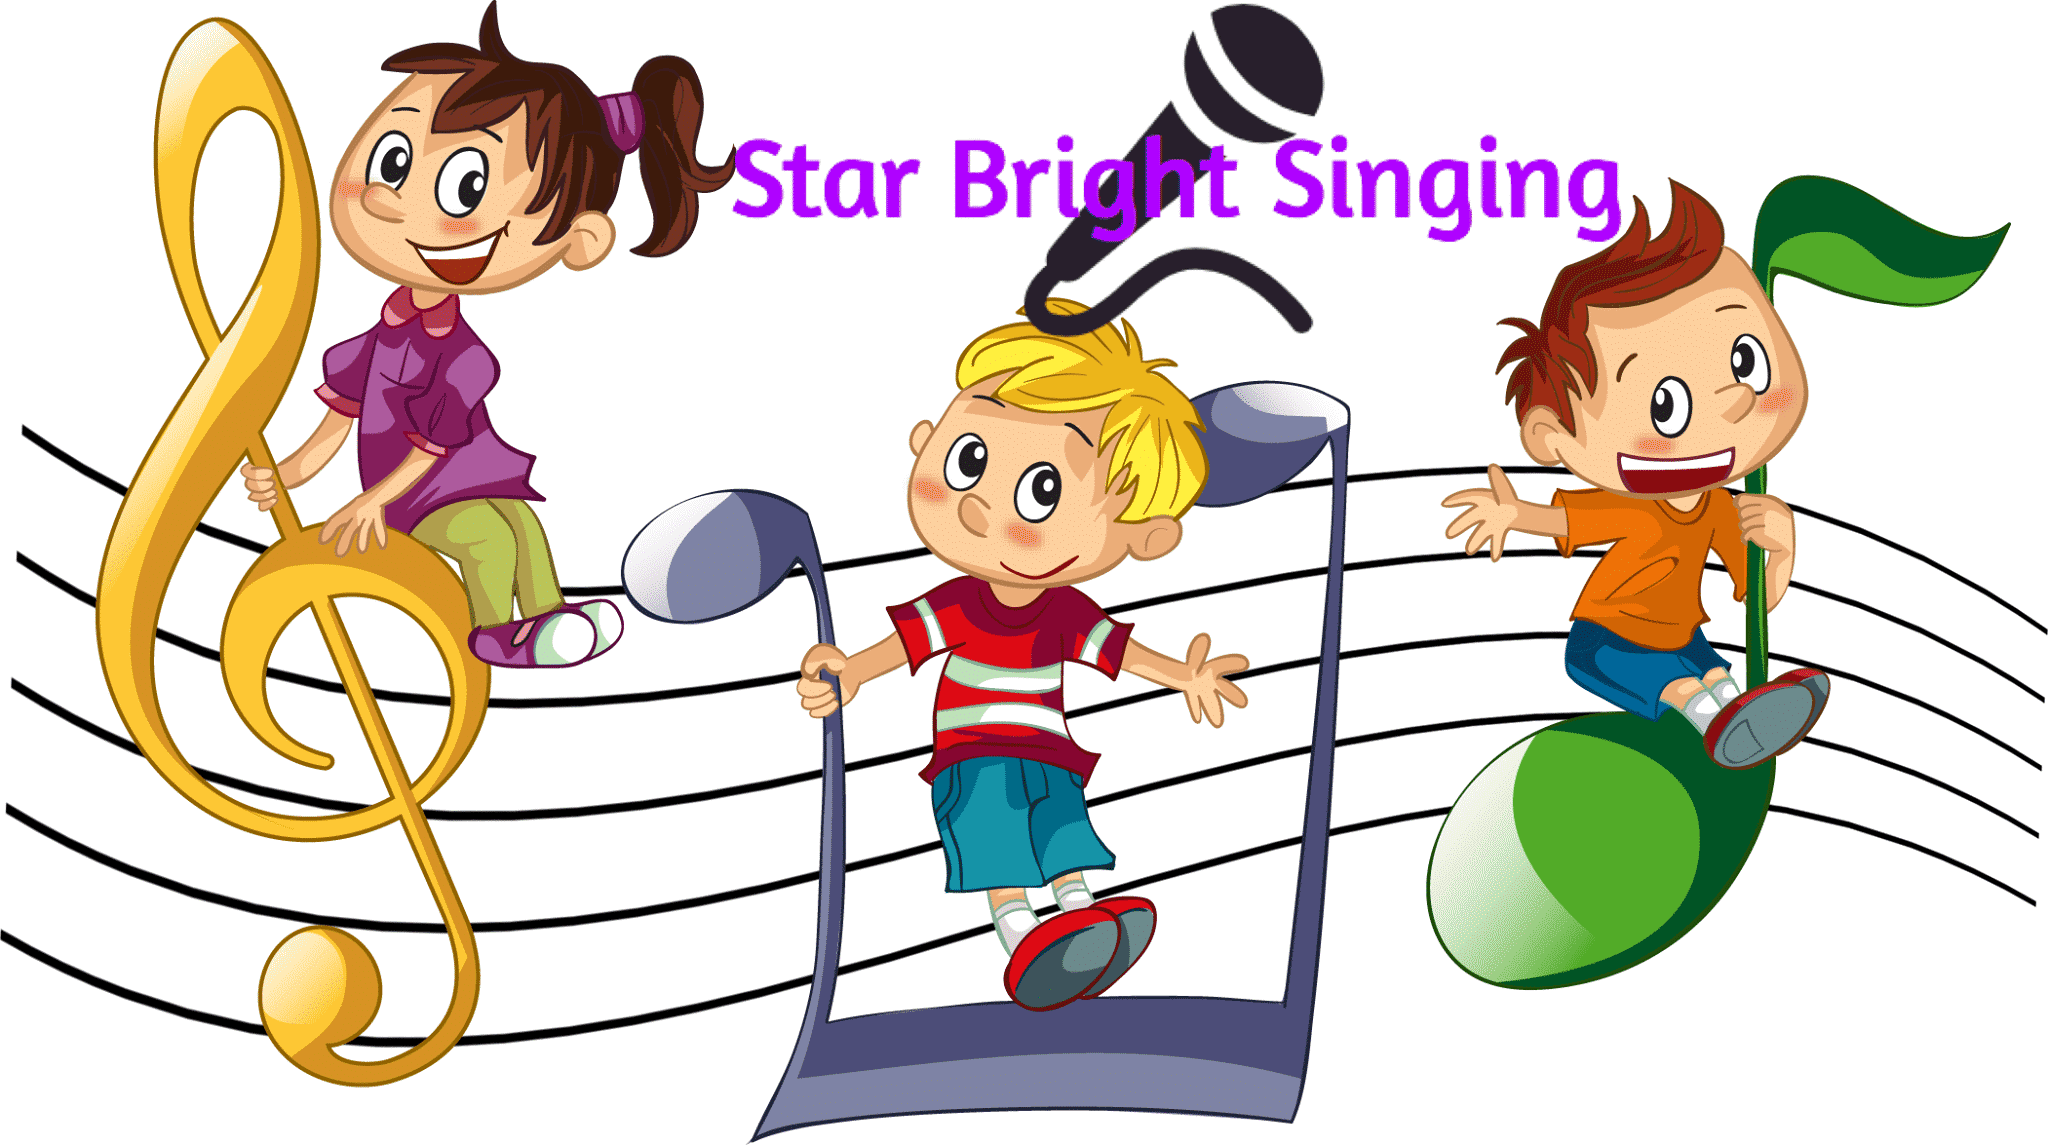 star bright singing cartoon poster with children standing on musical notes